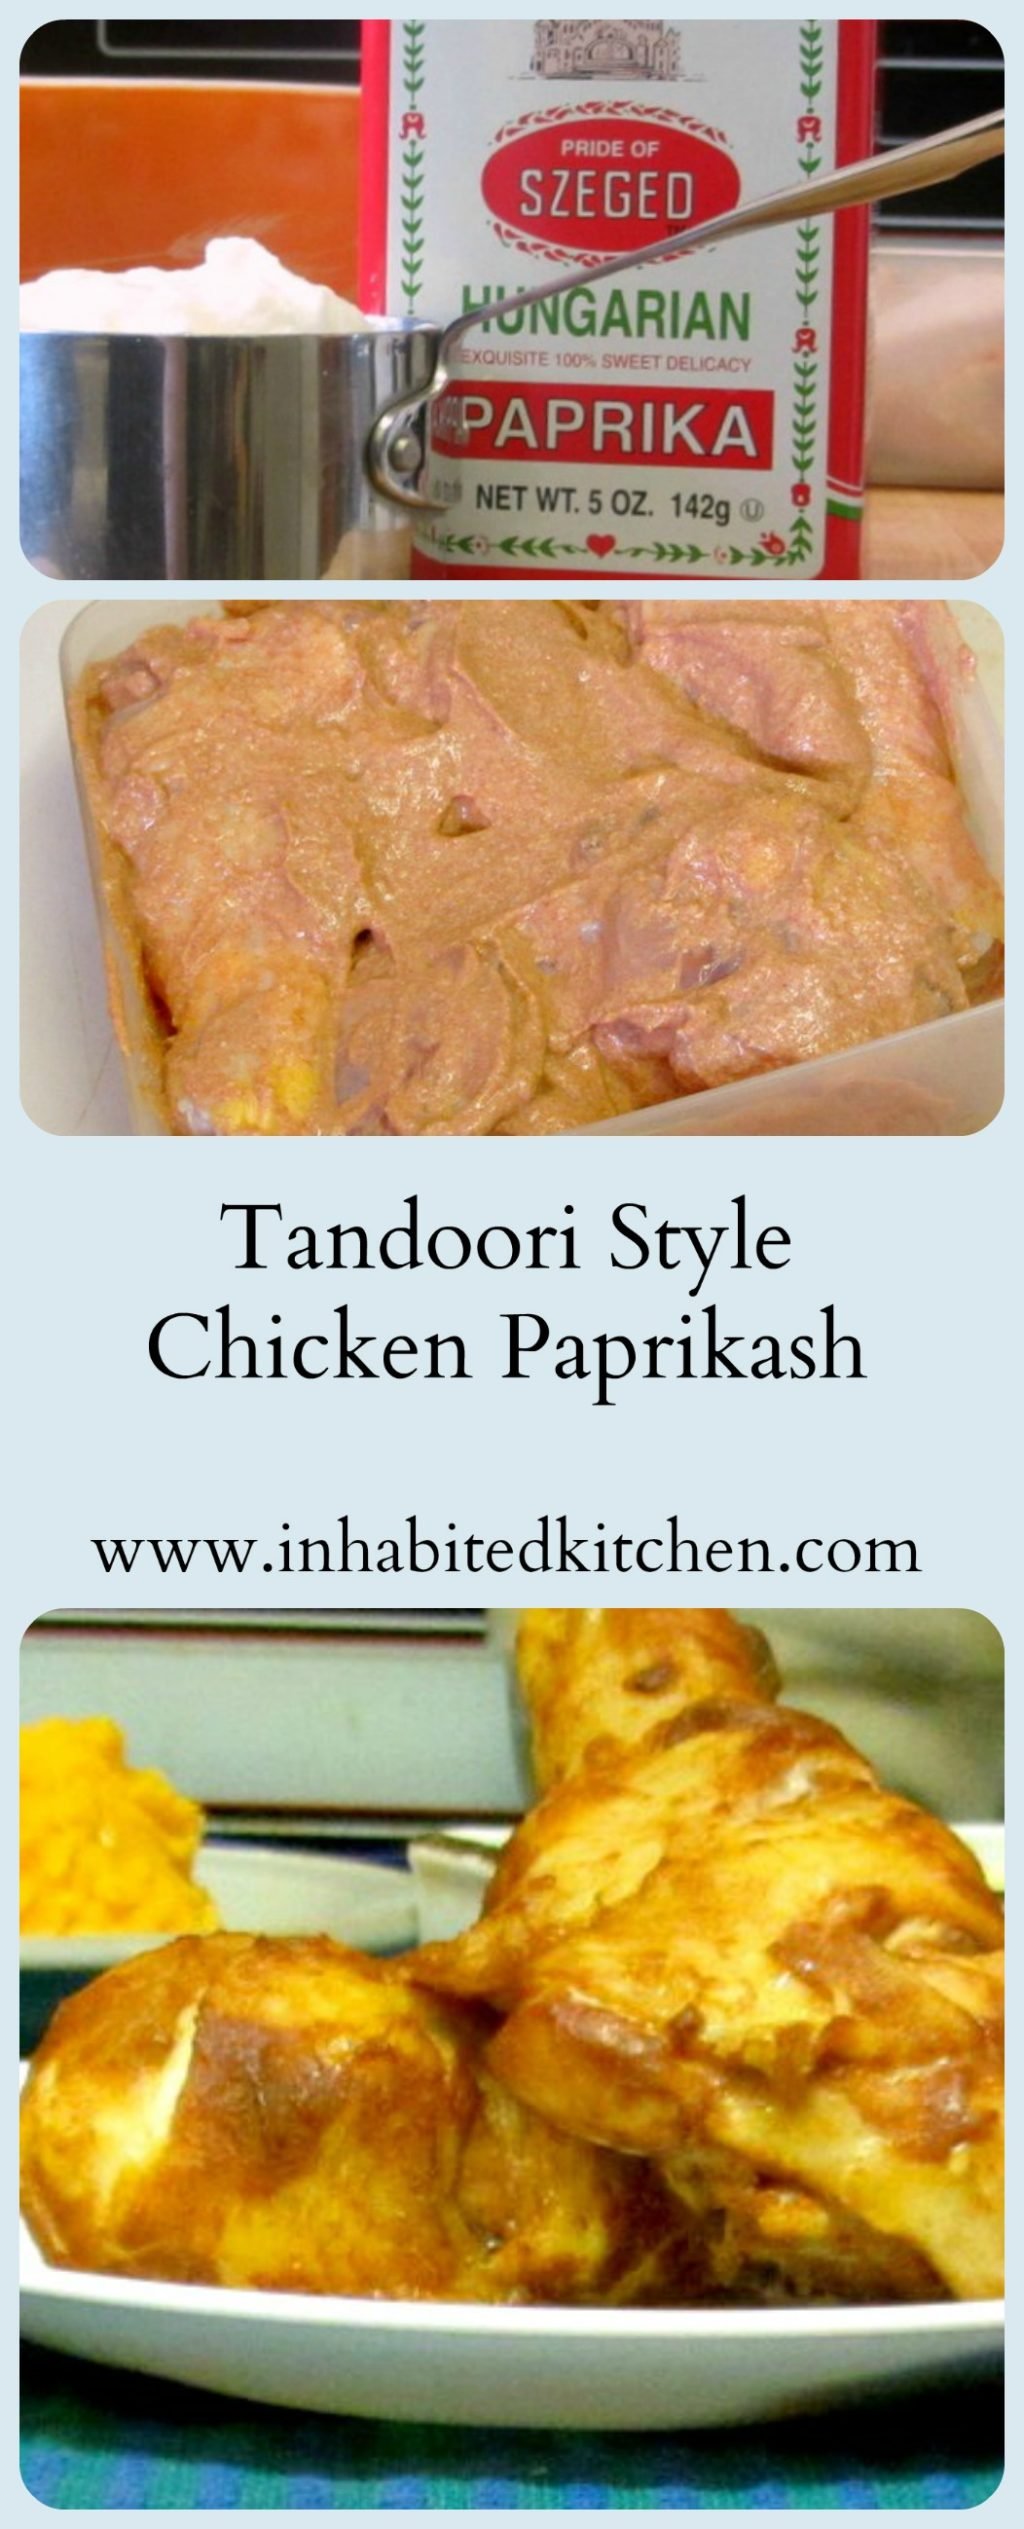 Use sweet Hungarian paprika, instead of Indian spices, in a yogurt marinade, then cook the chicken as if you were making tandoori chicken. www.inhabitedkitchen.com